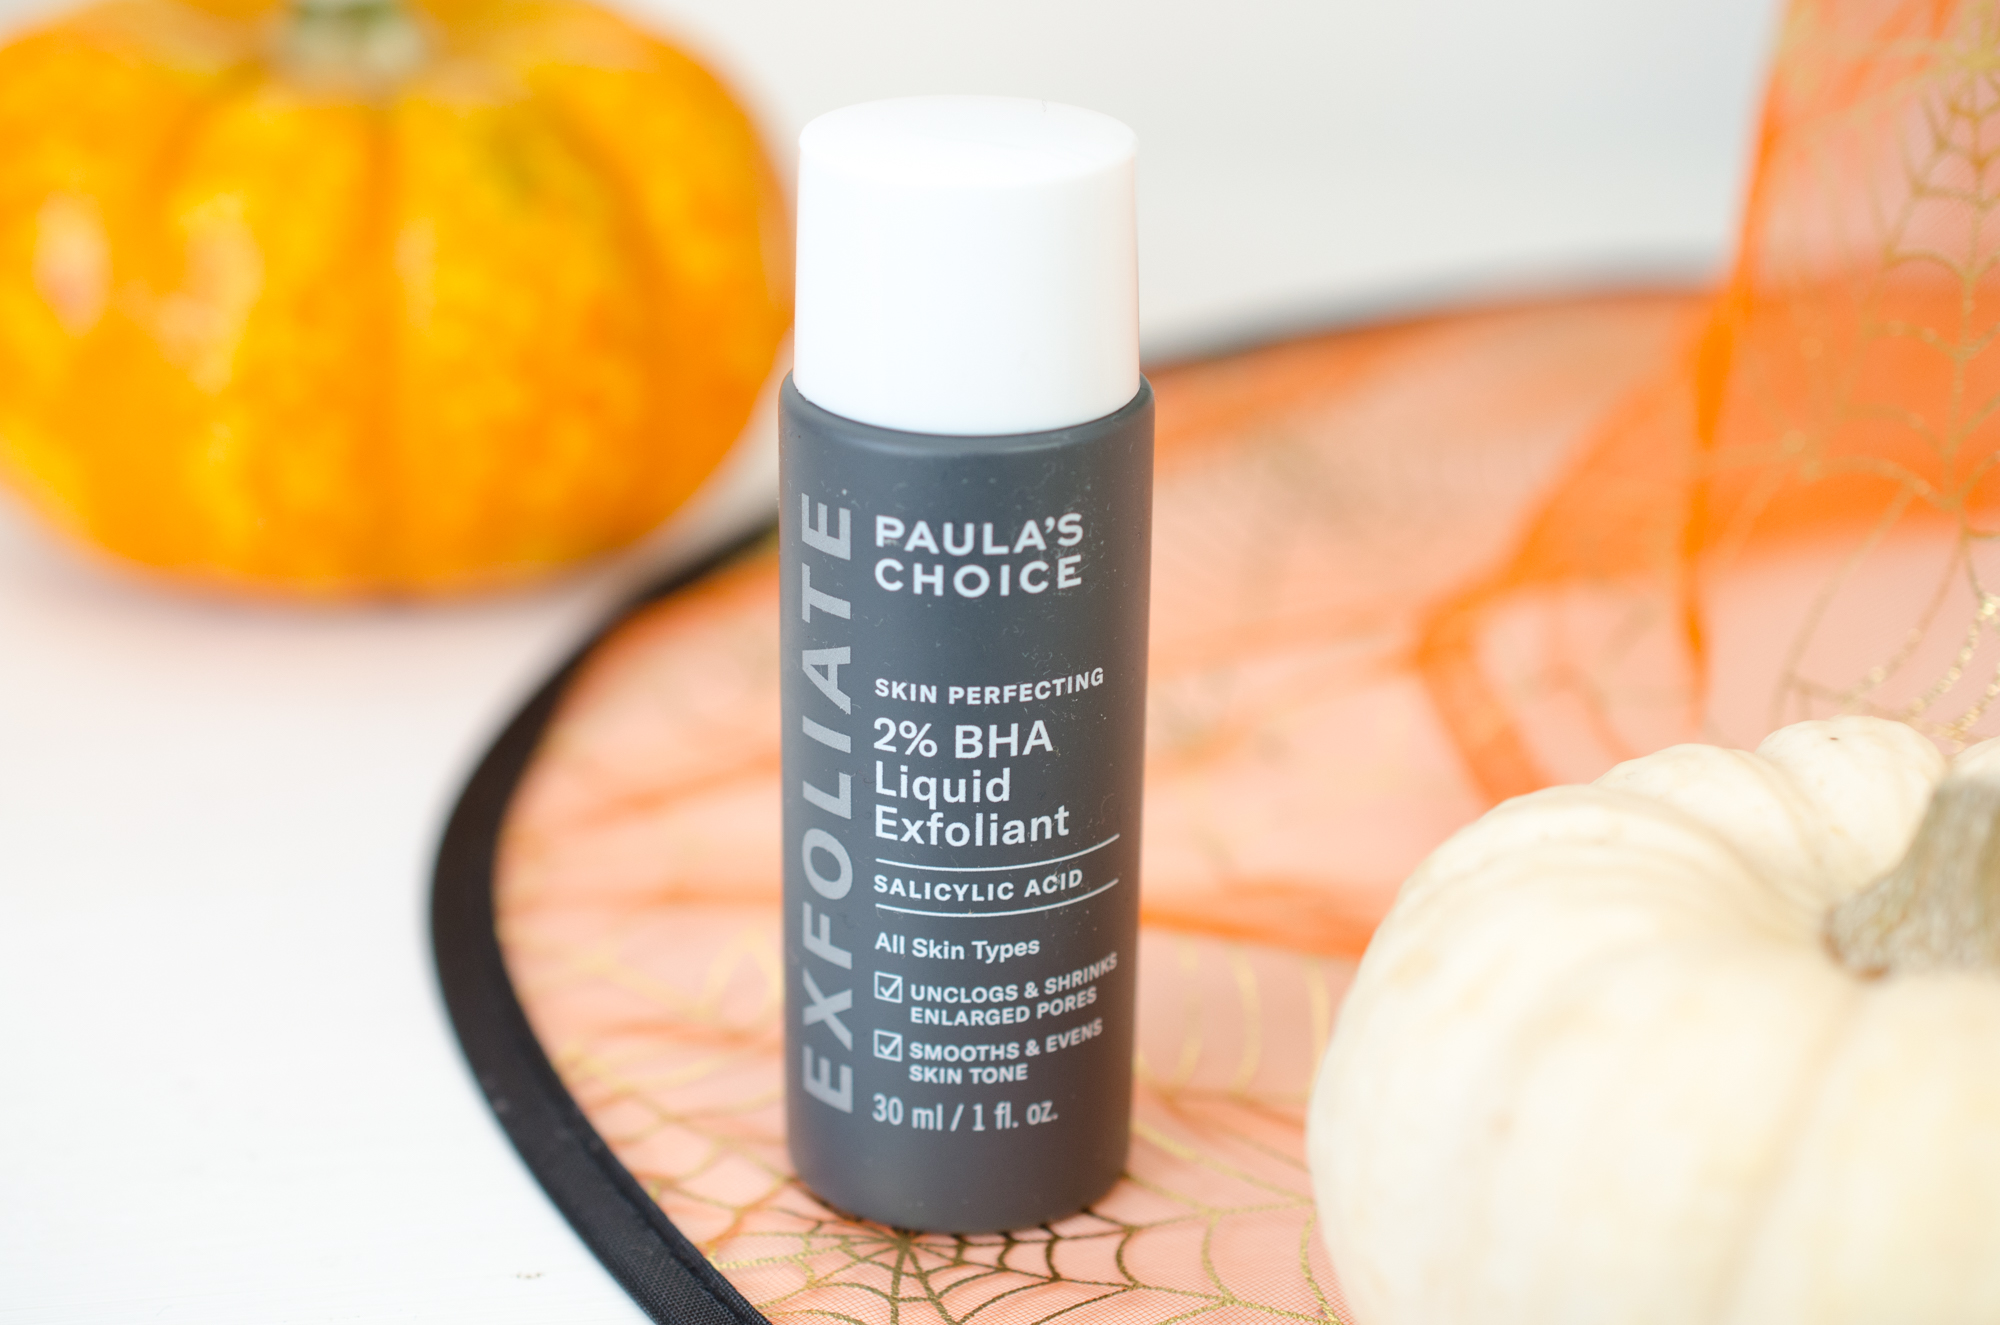 Paula's Choice 2% BHA Liquid Exfoliant travel size